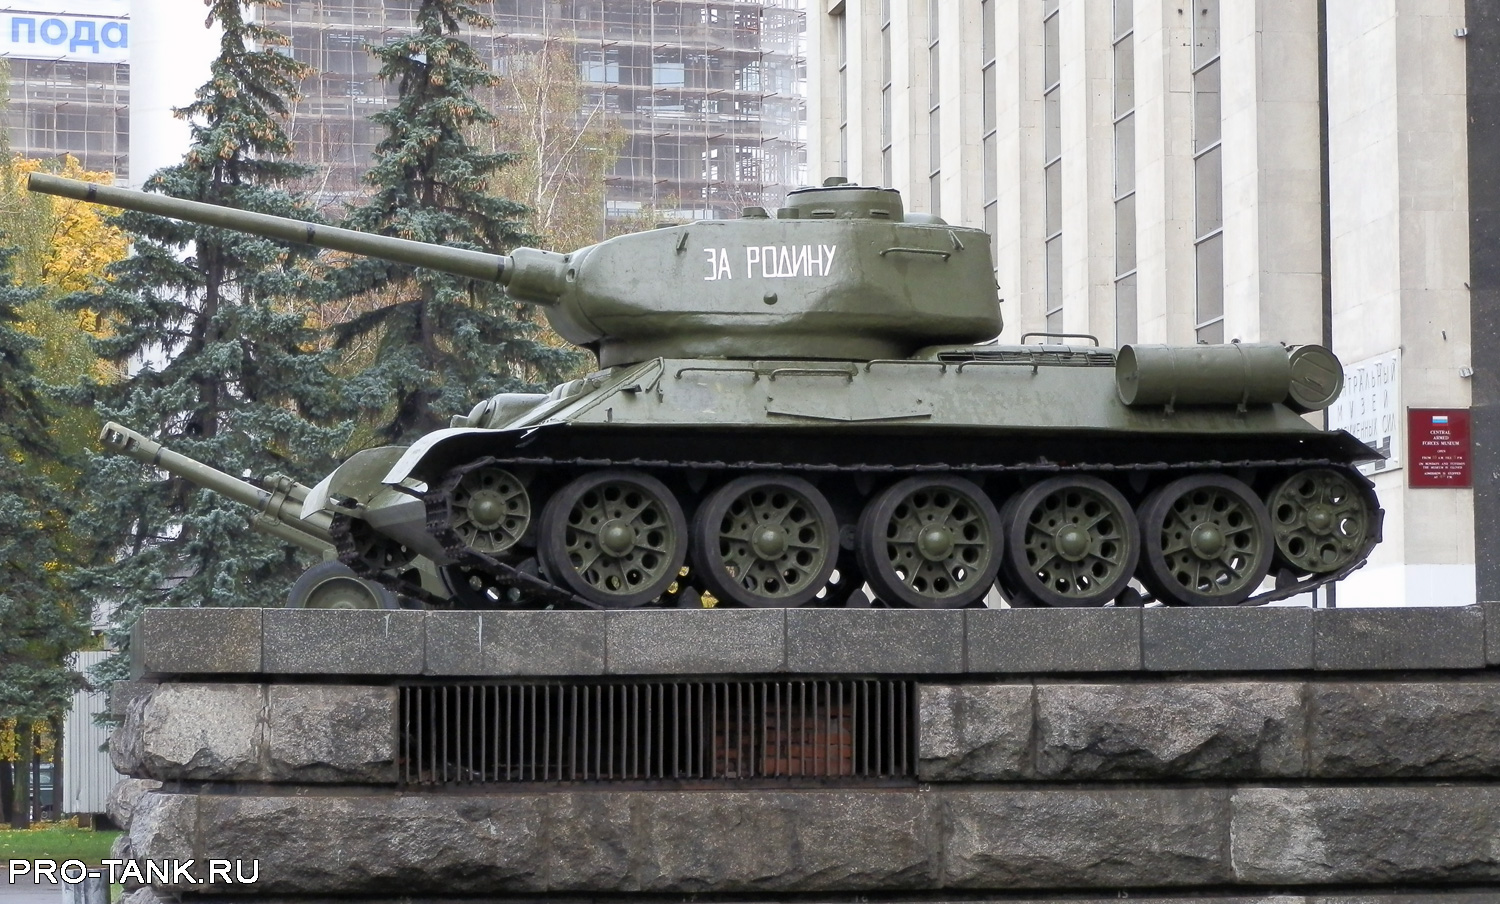 http://pro-tank.ru/images/stories/blog/museum/tanks-museum-03big.jpg